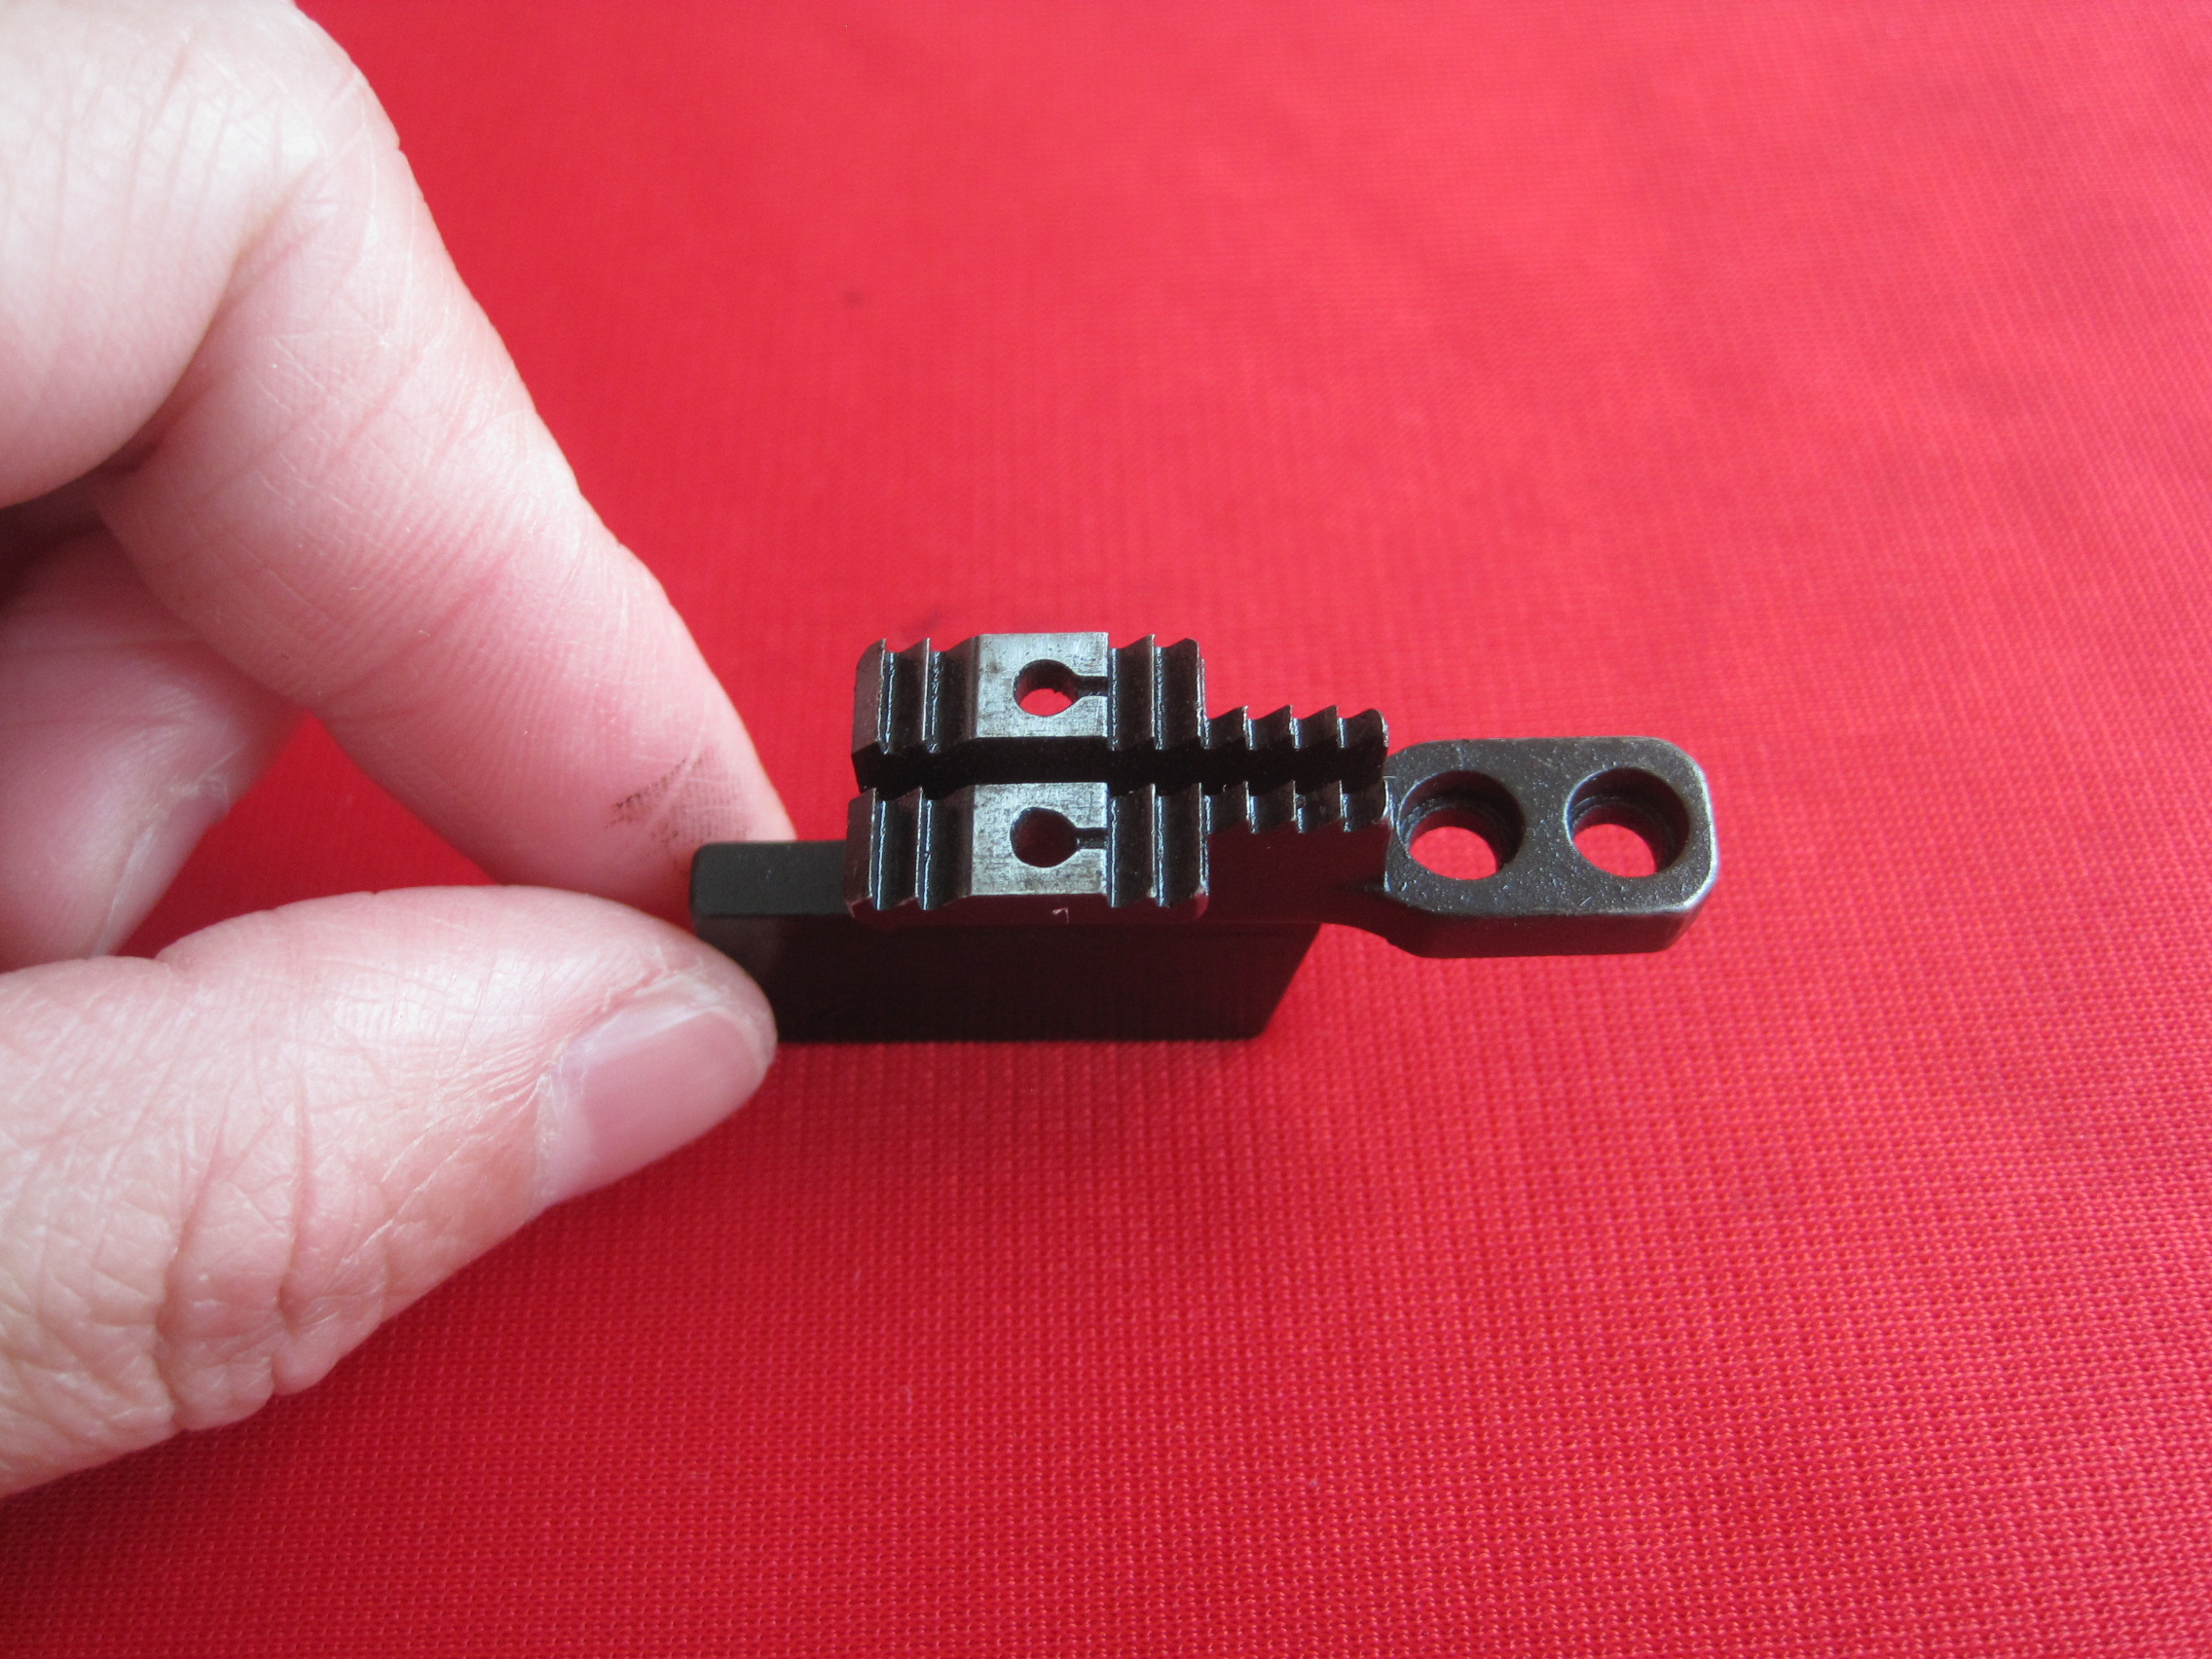 accessories heavy machine universal double needle lockstitch 2MM brothers 001 teeth teeth installed quality